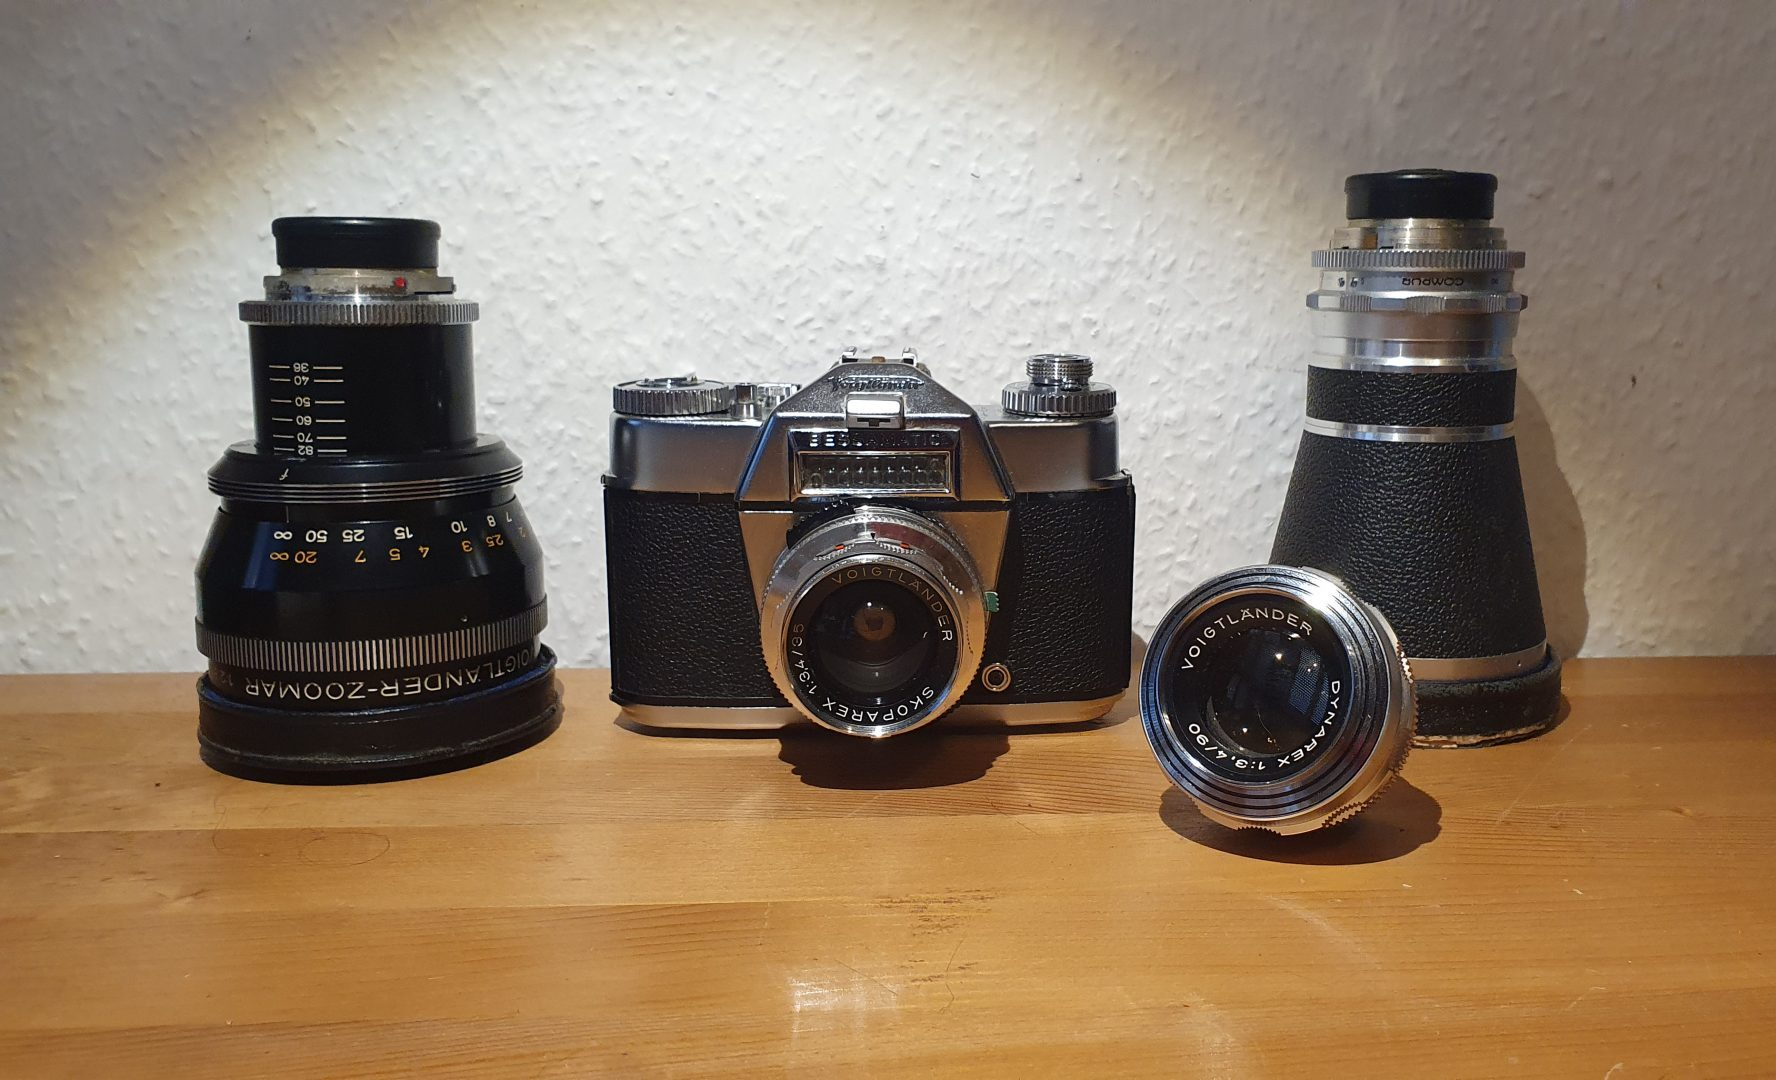 Voigtländer Bessamatic DeLuxe camera surrounded by the 90 mm and the 200 mm as well as the Zoomar 36 - 82 mm lens